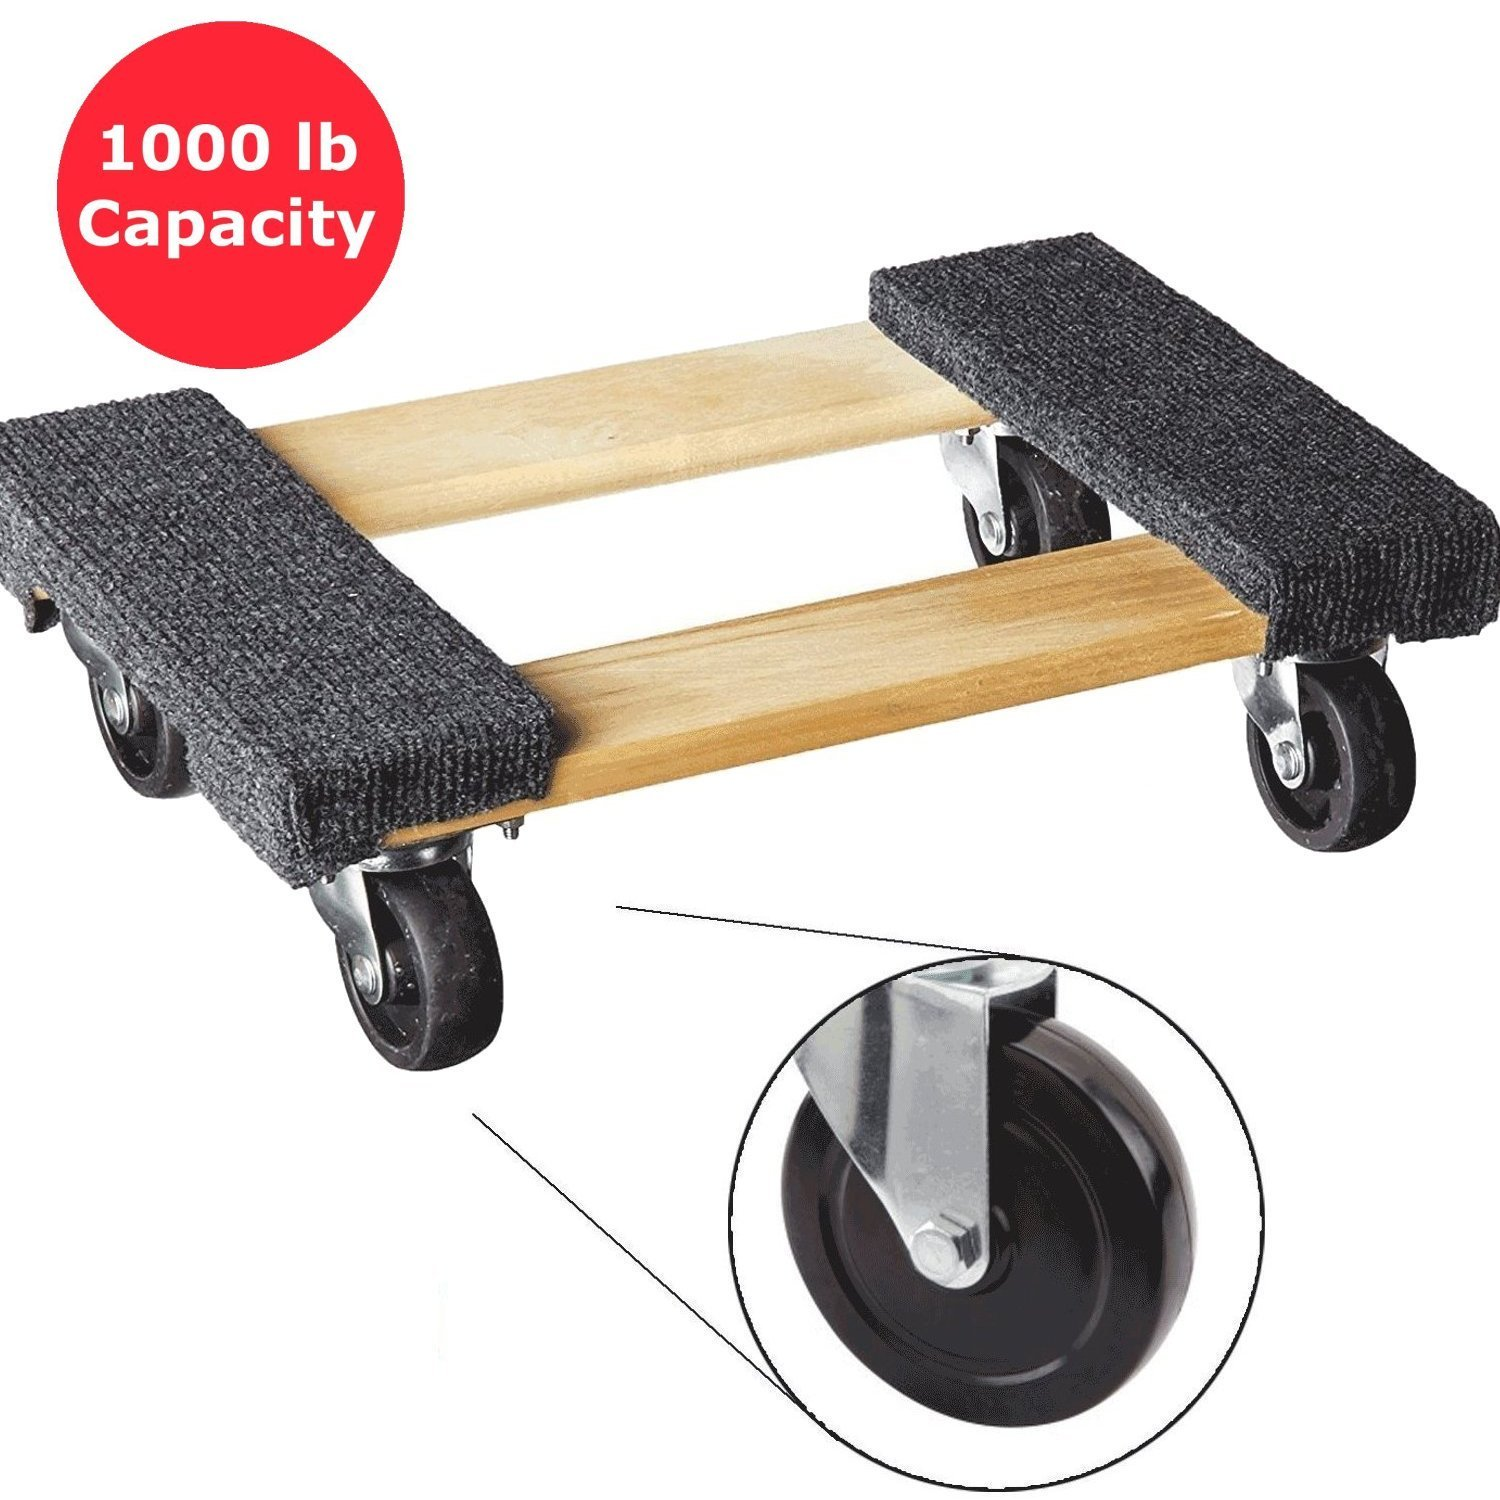 Furniture Dolly Platform With Wheels Moving Dolly Furniture Mover. Piano Dolly Rolling Surface Measures 12'' X 18''. Carpeted Furniture Mover. Heavy Duty Floor Dolley Holds Up To 1000lbs